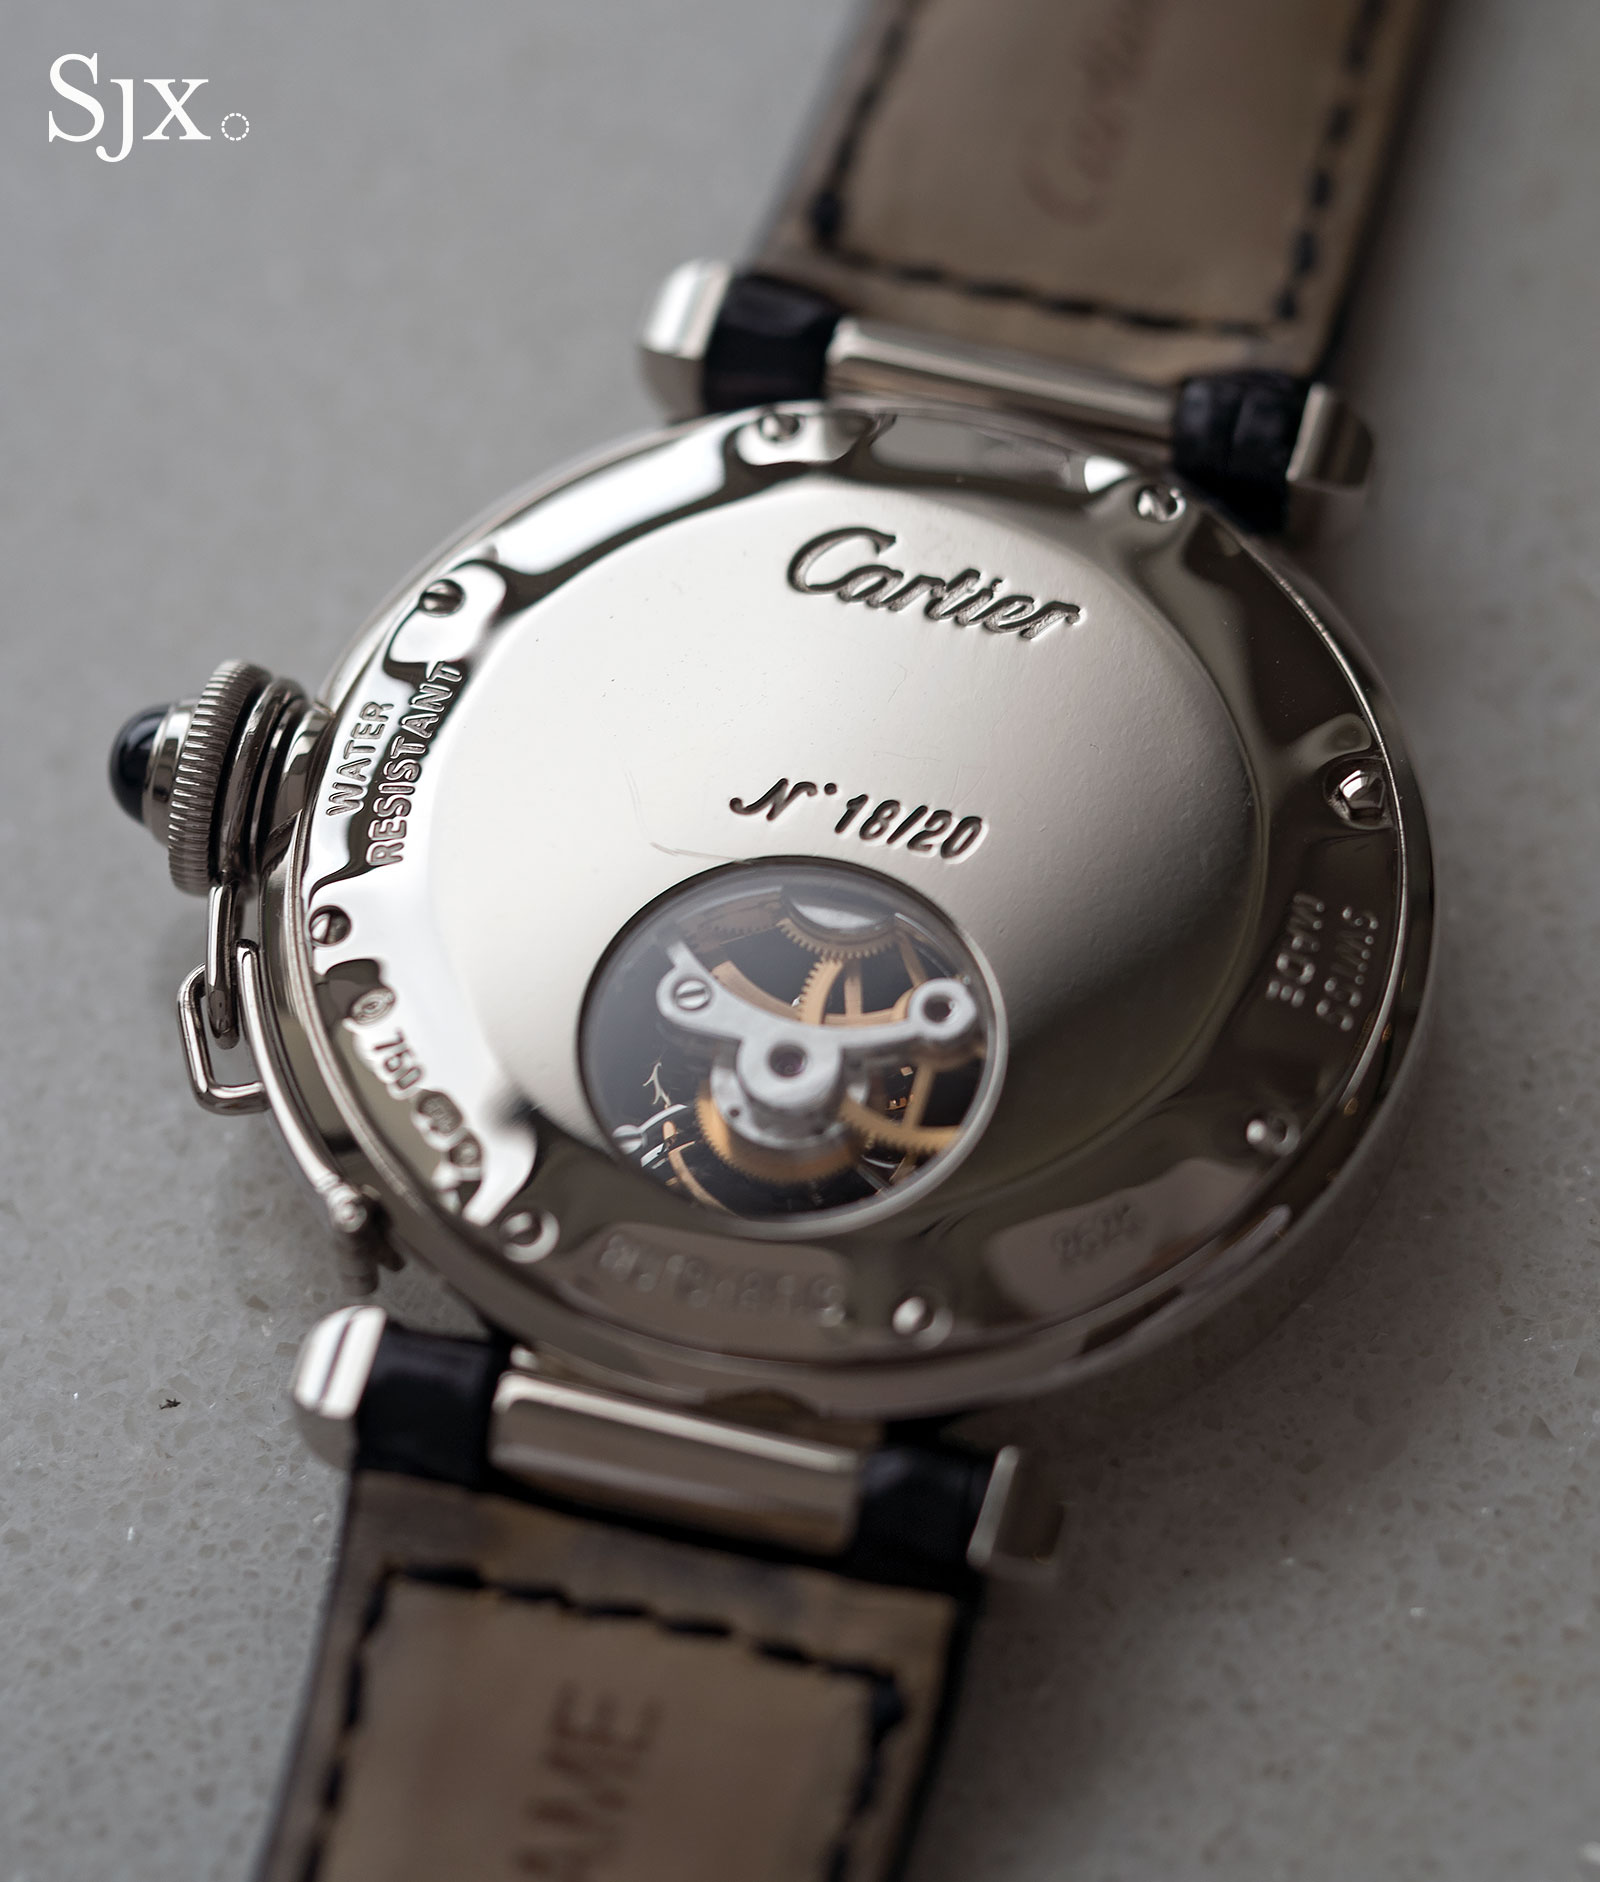 Cartier Pasha Tourbillon white gold 4